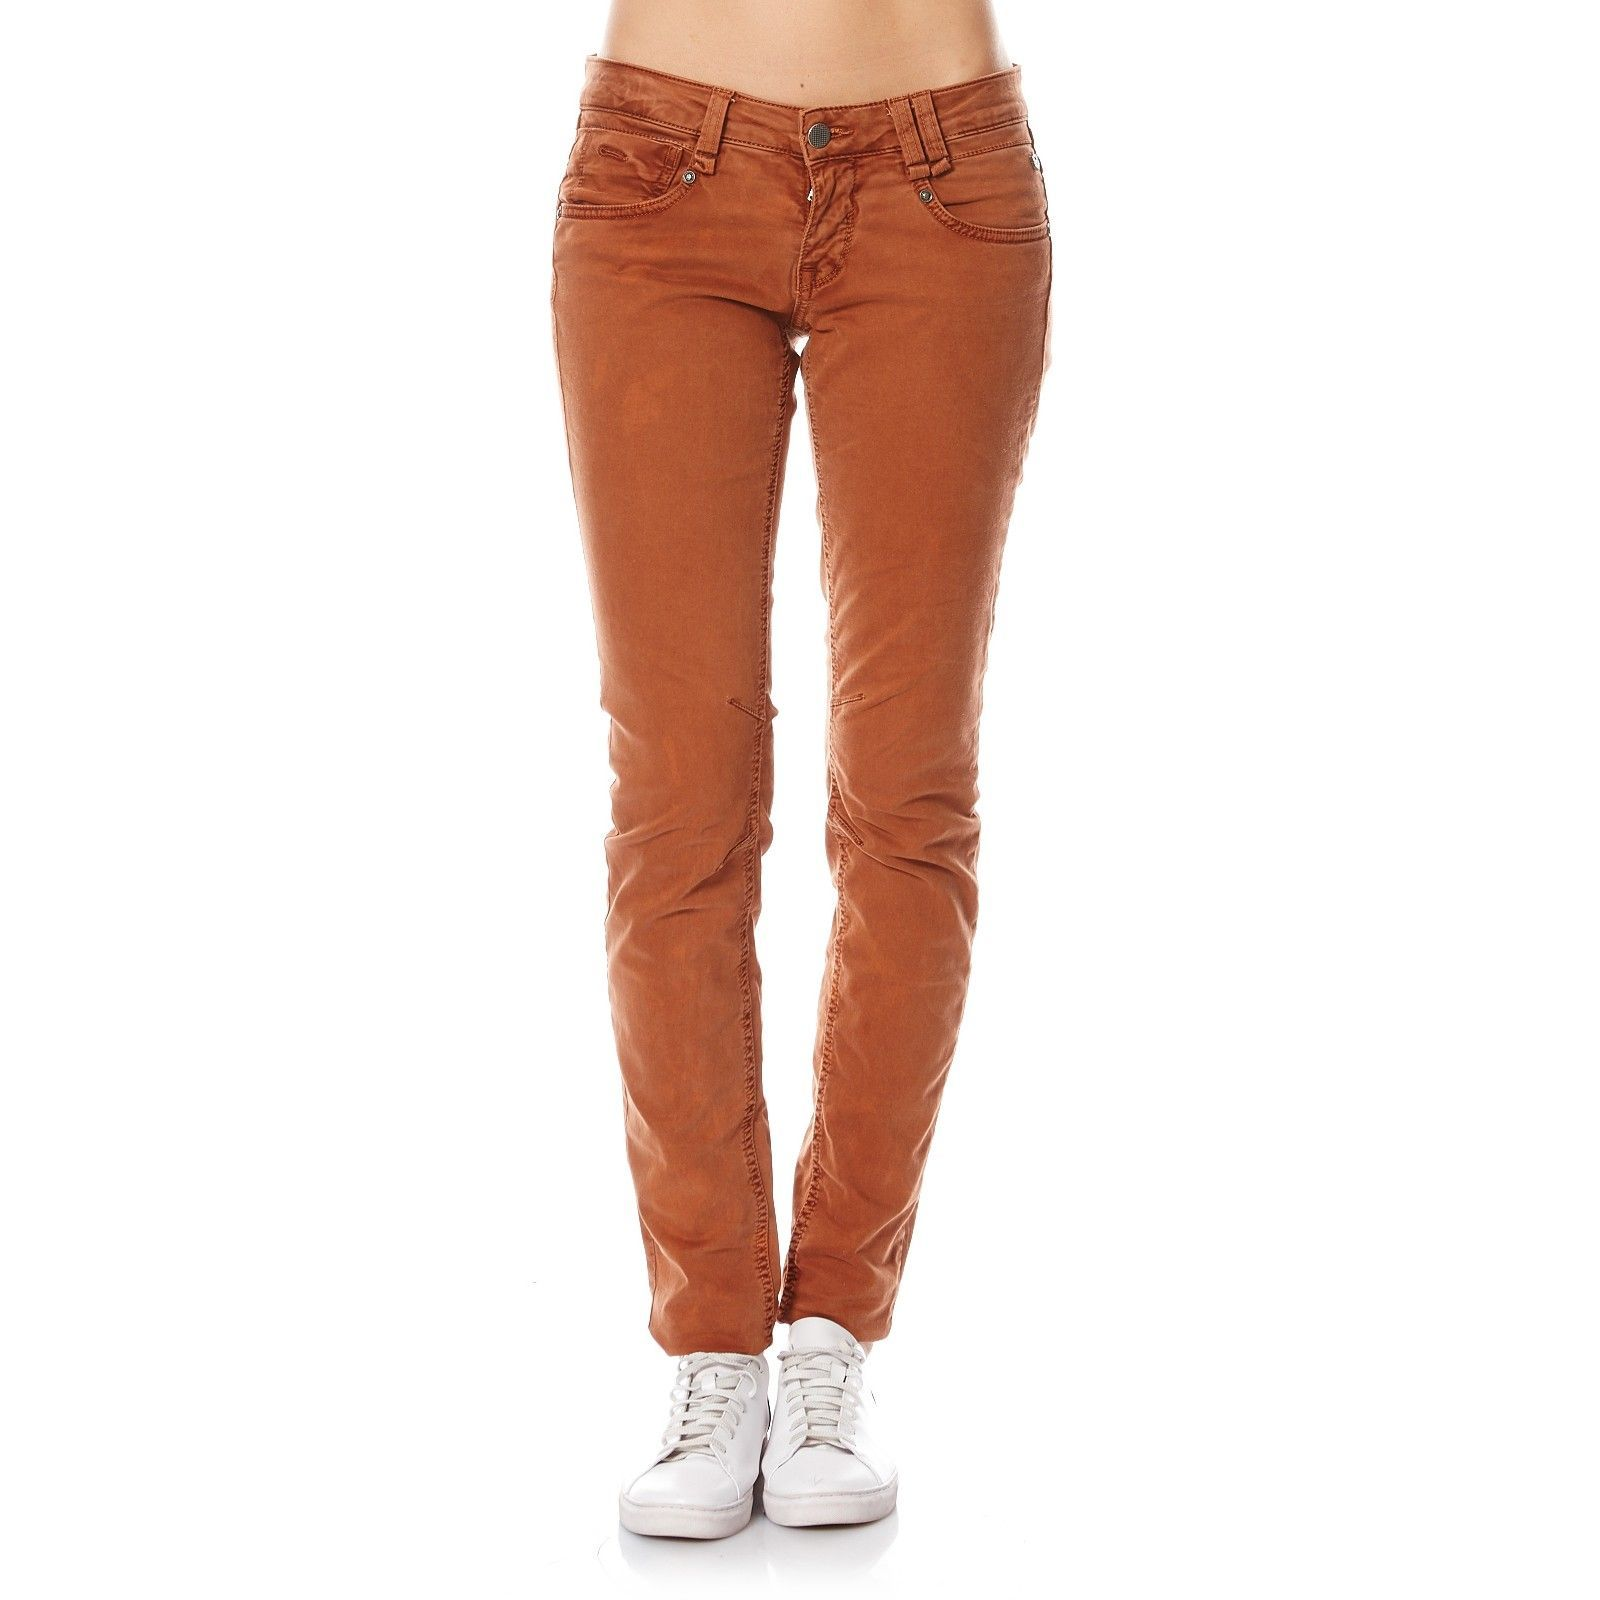 Freeman T Porter Dixie Peach  Pantalon  Marron